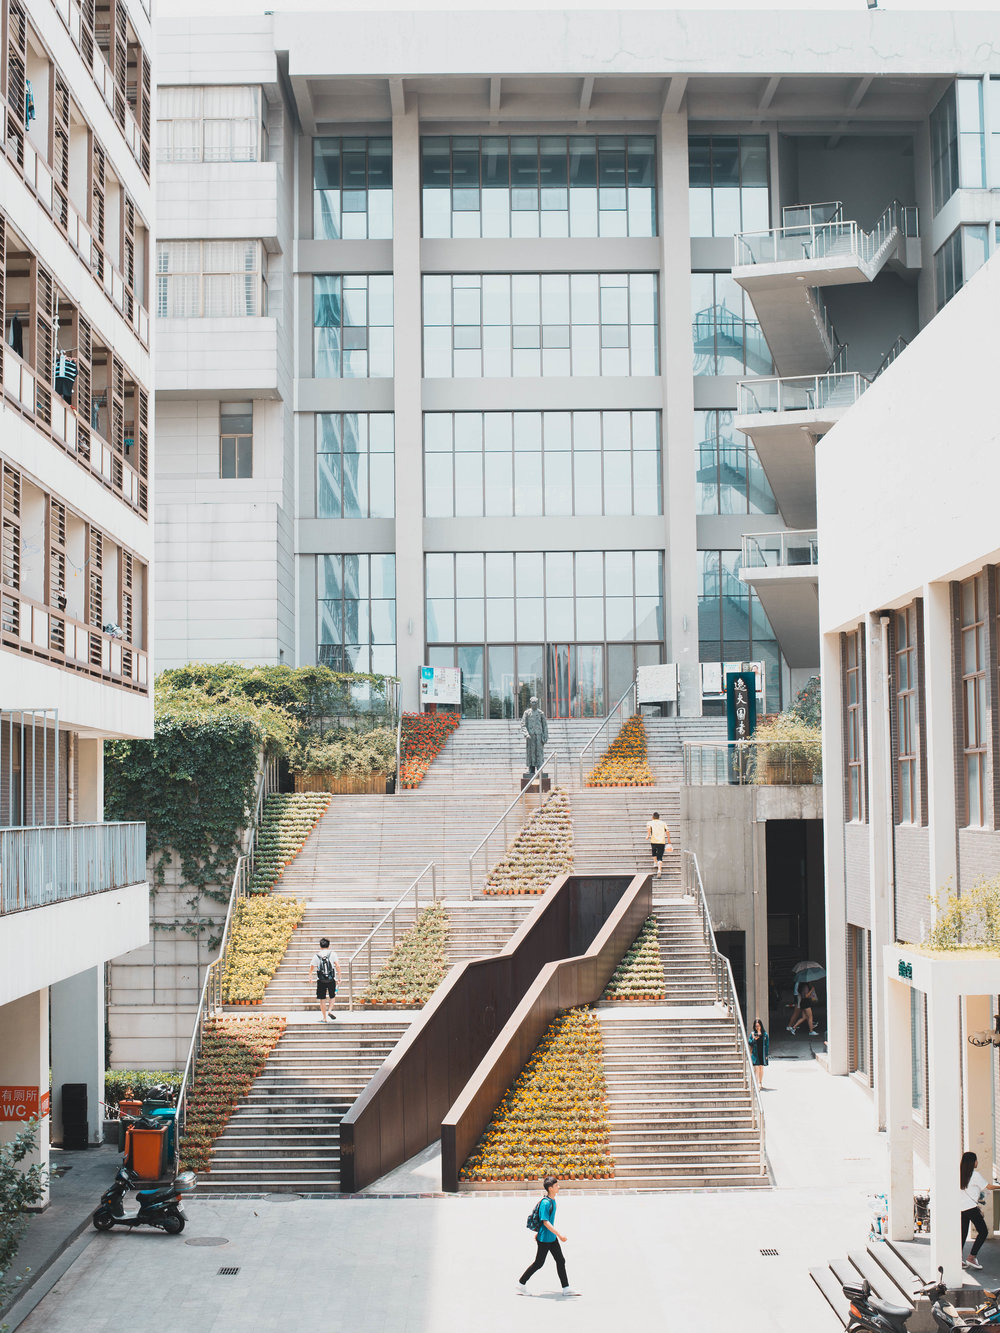 Escape the crowds at the Nanjing University of Arts